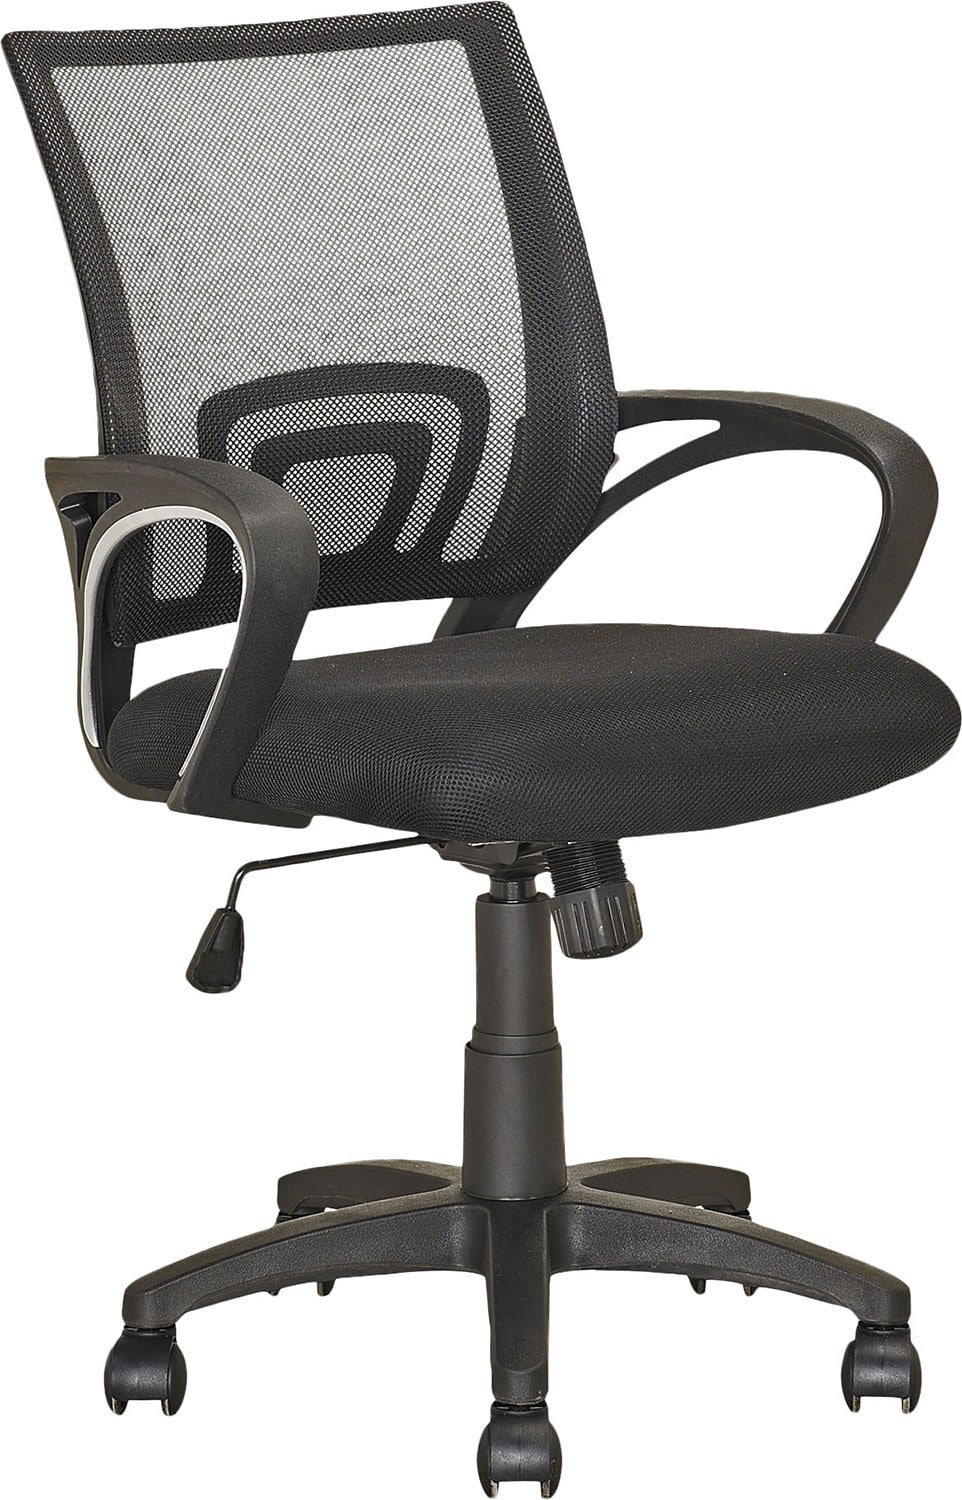 Home Office Furniture - Memphis Soft Fabric Office Chair with Back Support